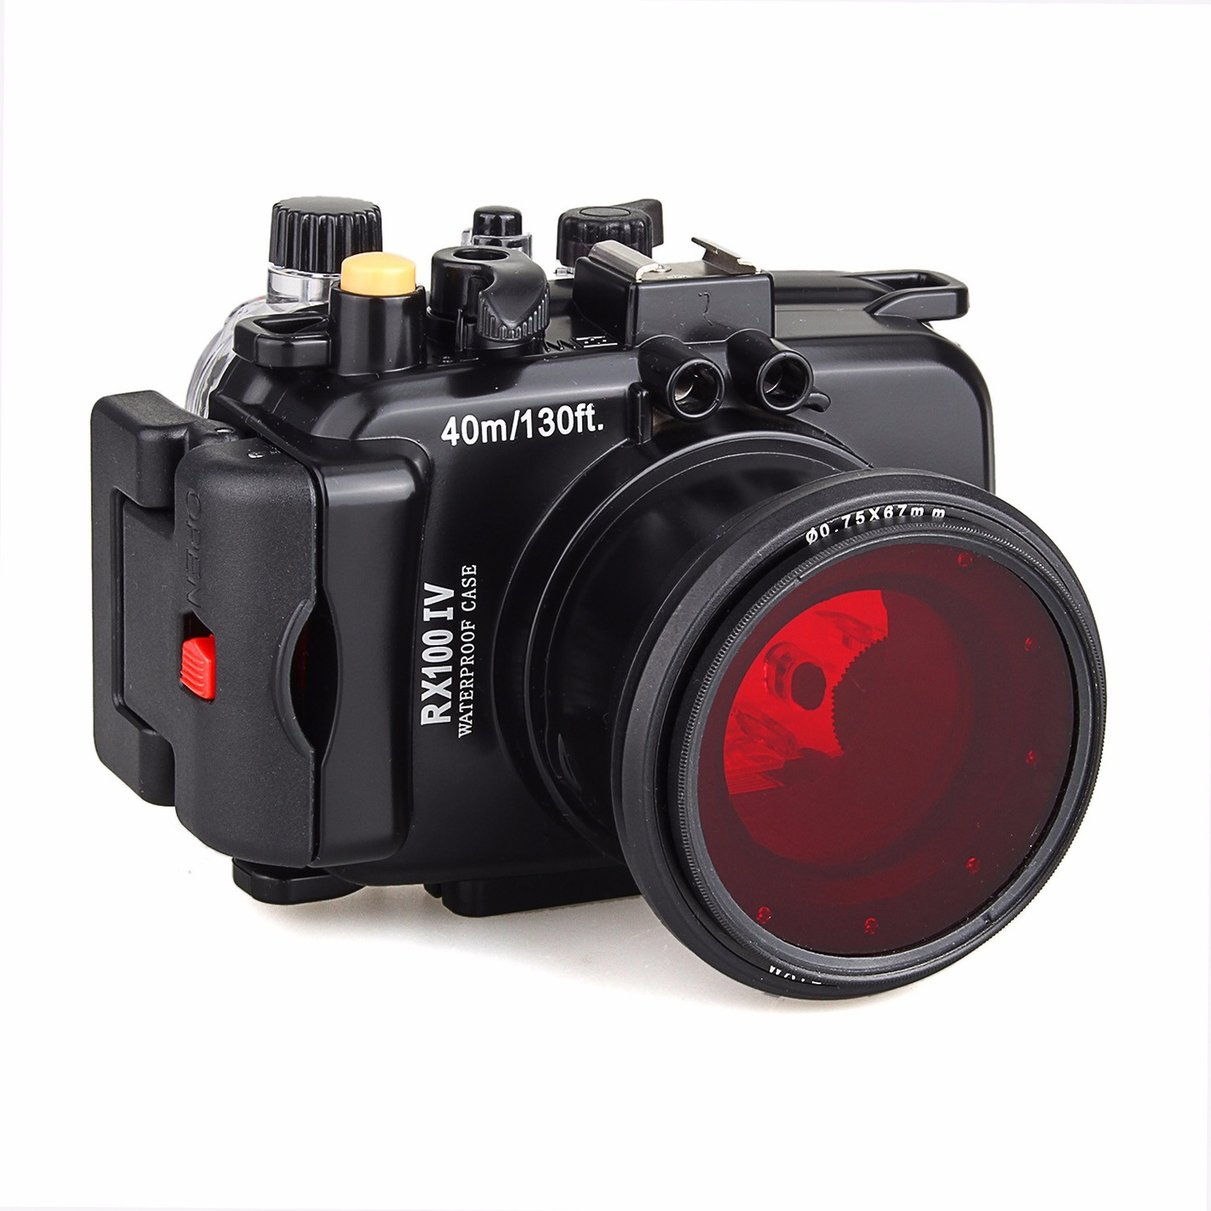 40M/130f Underwater Waterproof Camera Housing Diving Case for Sony DSC RX100 IV + Red Filter 67mm meikon underwater camera housing for sony dsc rx100 iv 40m 130ft red underwater filter wet 67mm aluminum diving handle